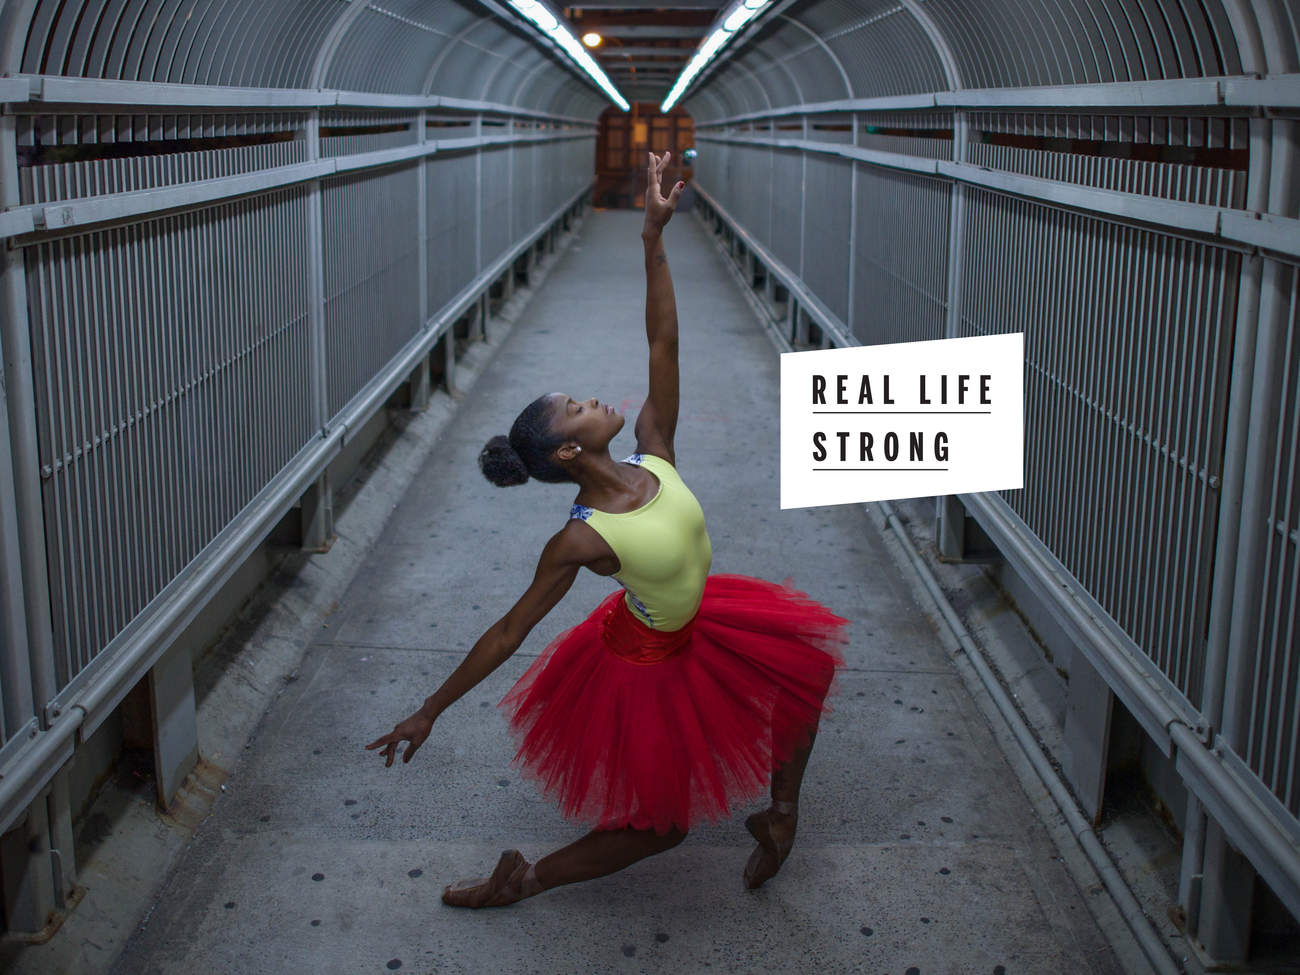 ingrid-silva-two-real-life-strong